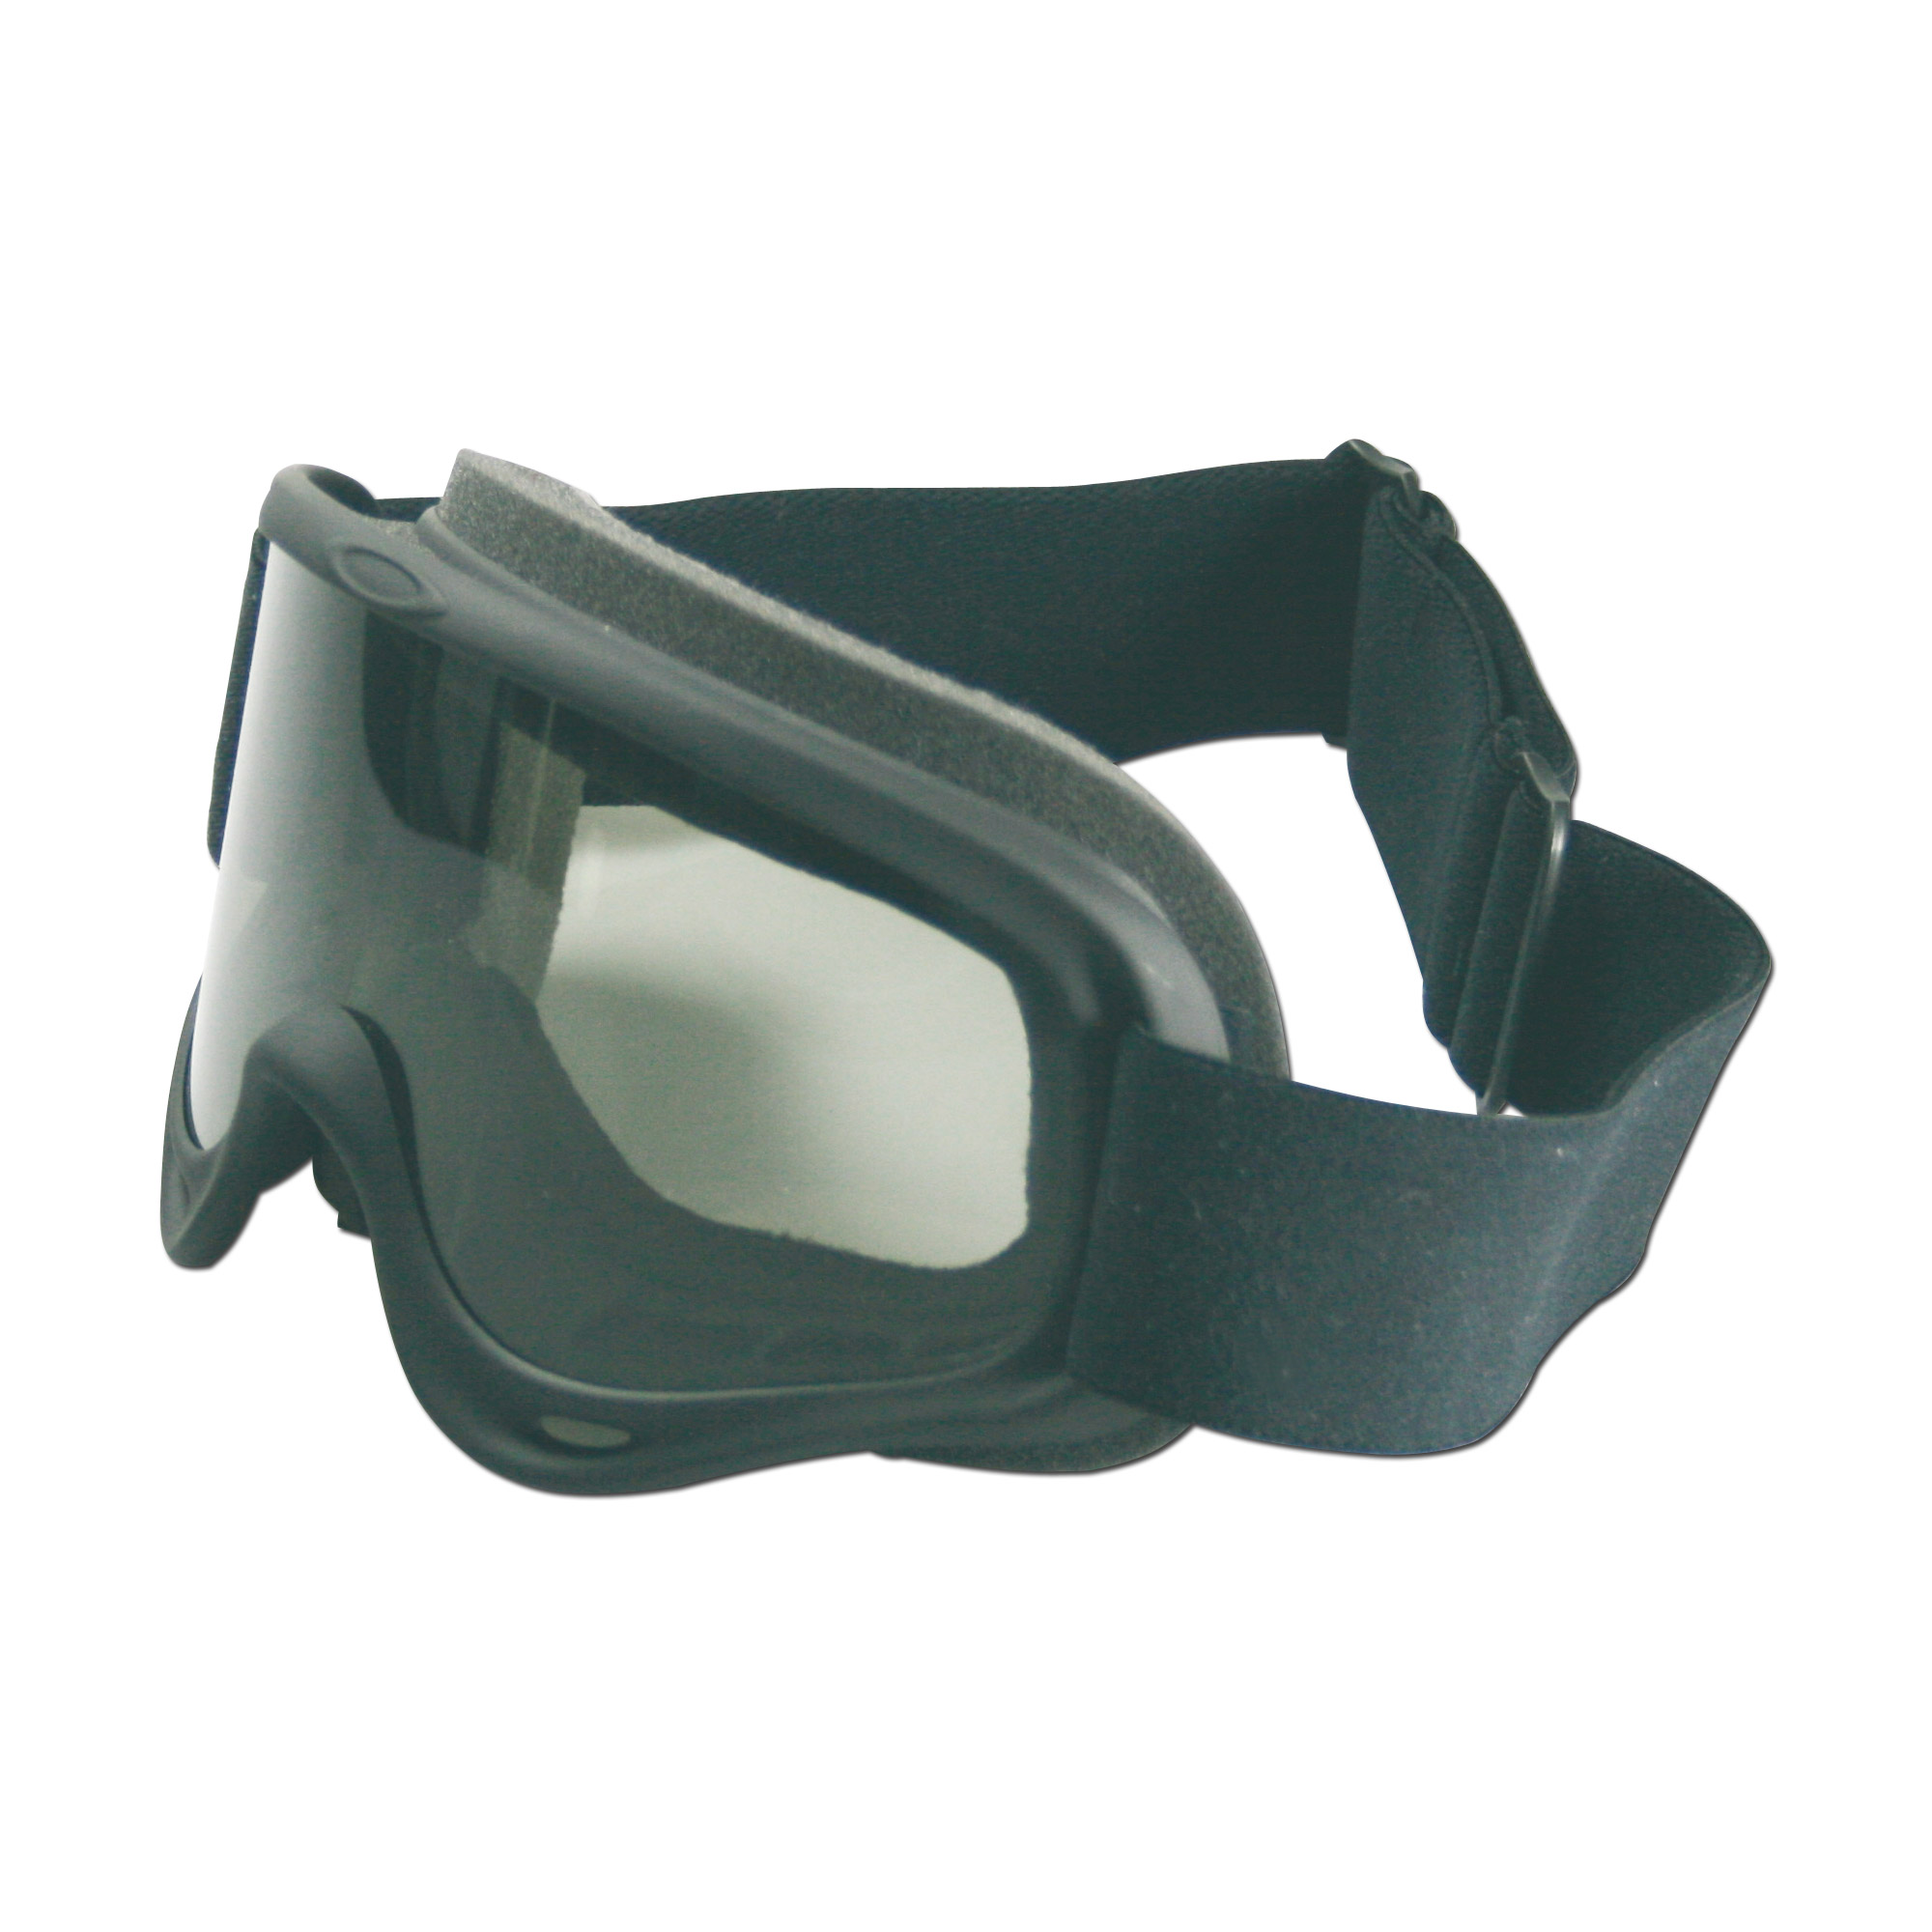 Oakley Goggles Goggles O Frame Lunettes O Lunettes Oakley 35jAL4Rq